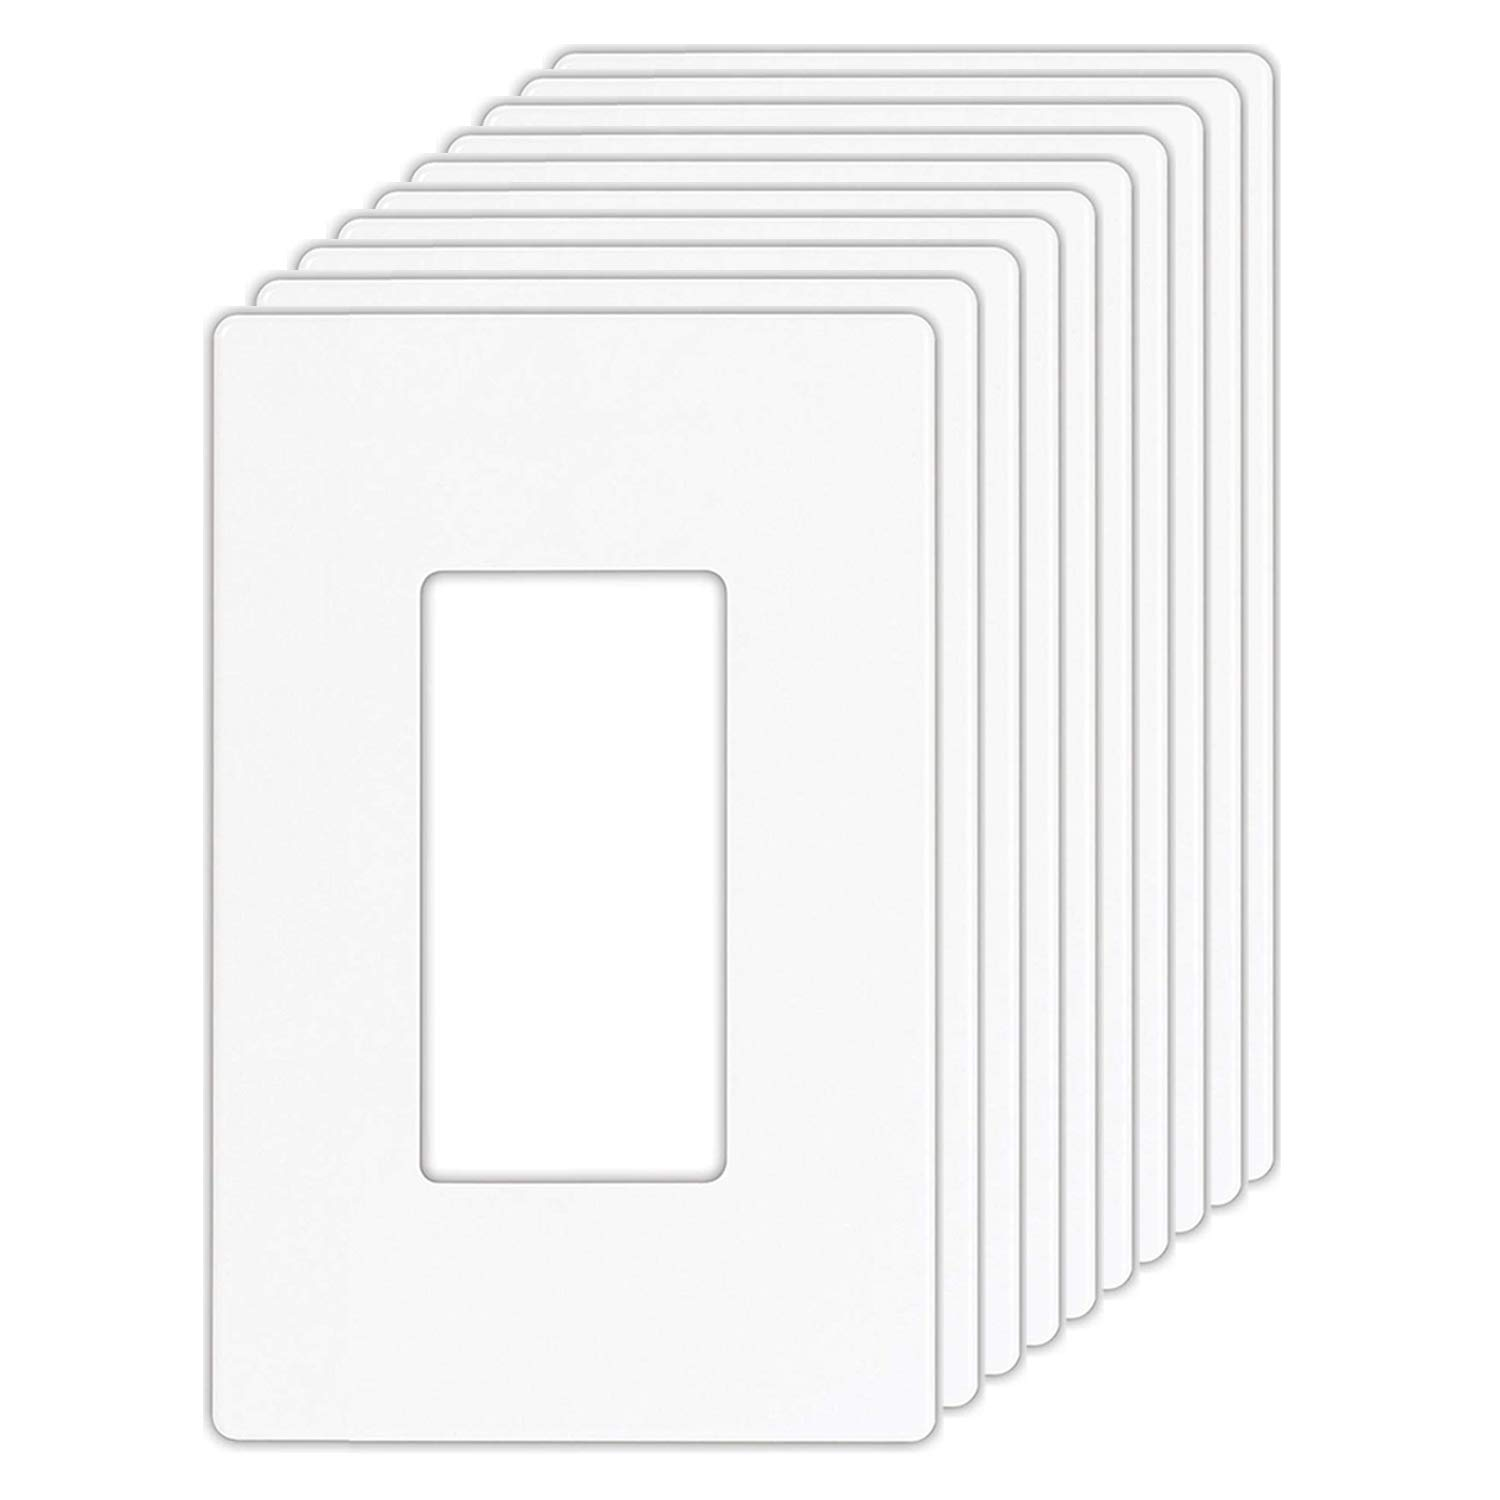 [10 Pack] BESTTEN USWP4 Series, Mid-Sized 1-Gang Screwless Wall Plate, Outlet Cover for GFCI, Decor Receptacle and Light Switch, Child Safe, Unbreakable PC, UL Listed, White